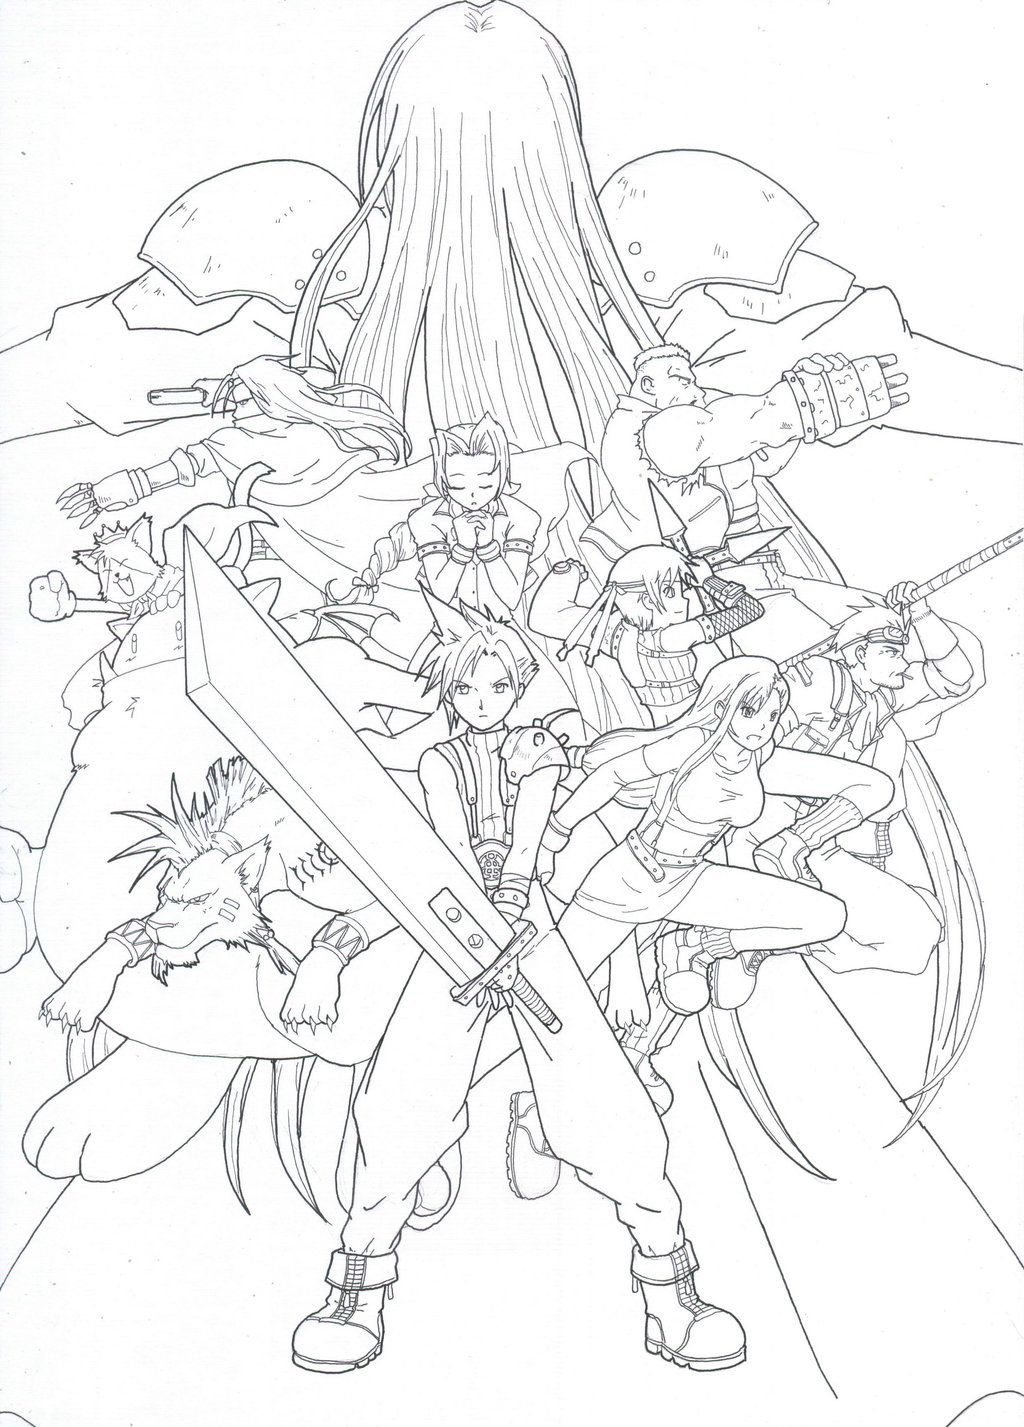 Final Fantasy Coloring Pages - Final Fantasy 7 Fan Art Coloring Pages and Printables Download